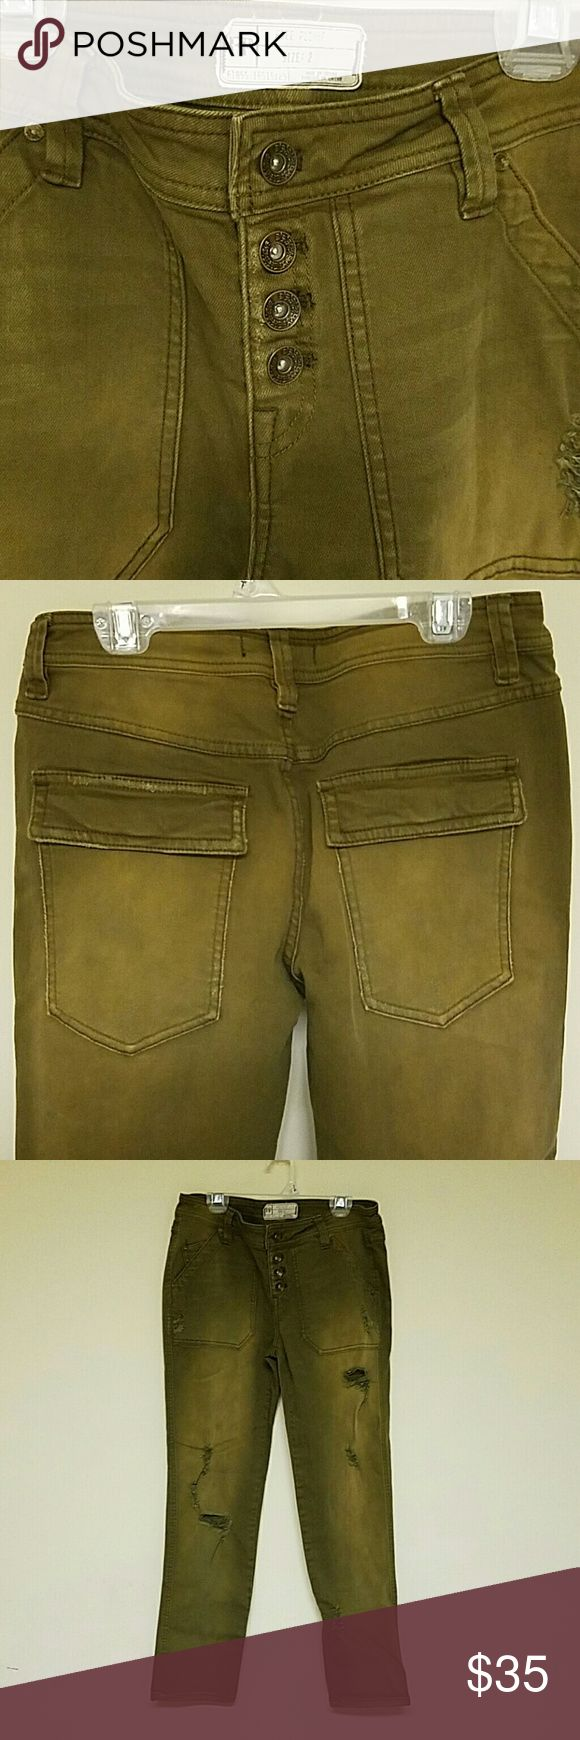 """Free people sz 2 army green jeans Sooo cute and perfect condition Army green distressed  4 button fly 8 1/4"""" rise  29"""" waist 28"""" inseam 12"""" Leg opening 92% cotton 7% polyester 1% spandex Free People Jeans Skinny"""